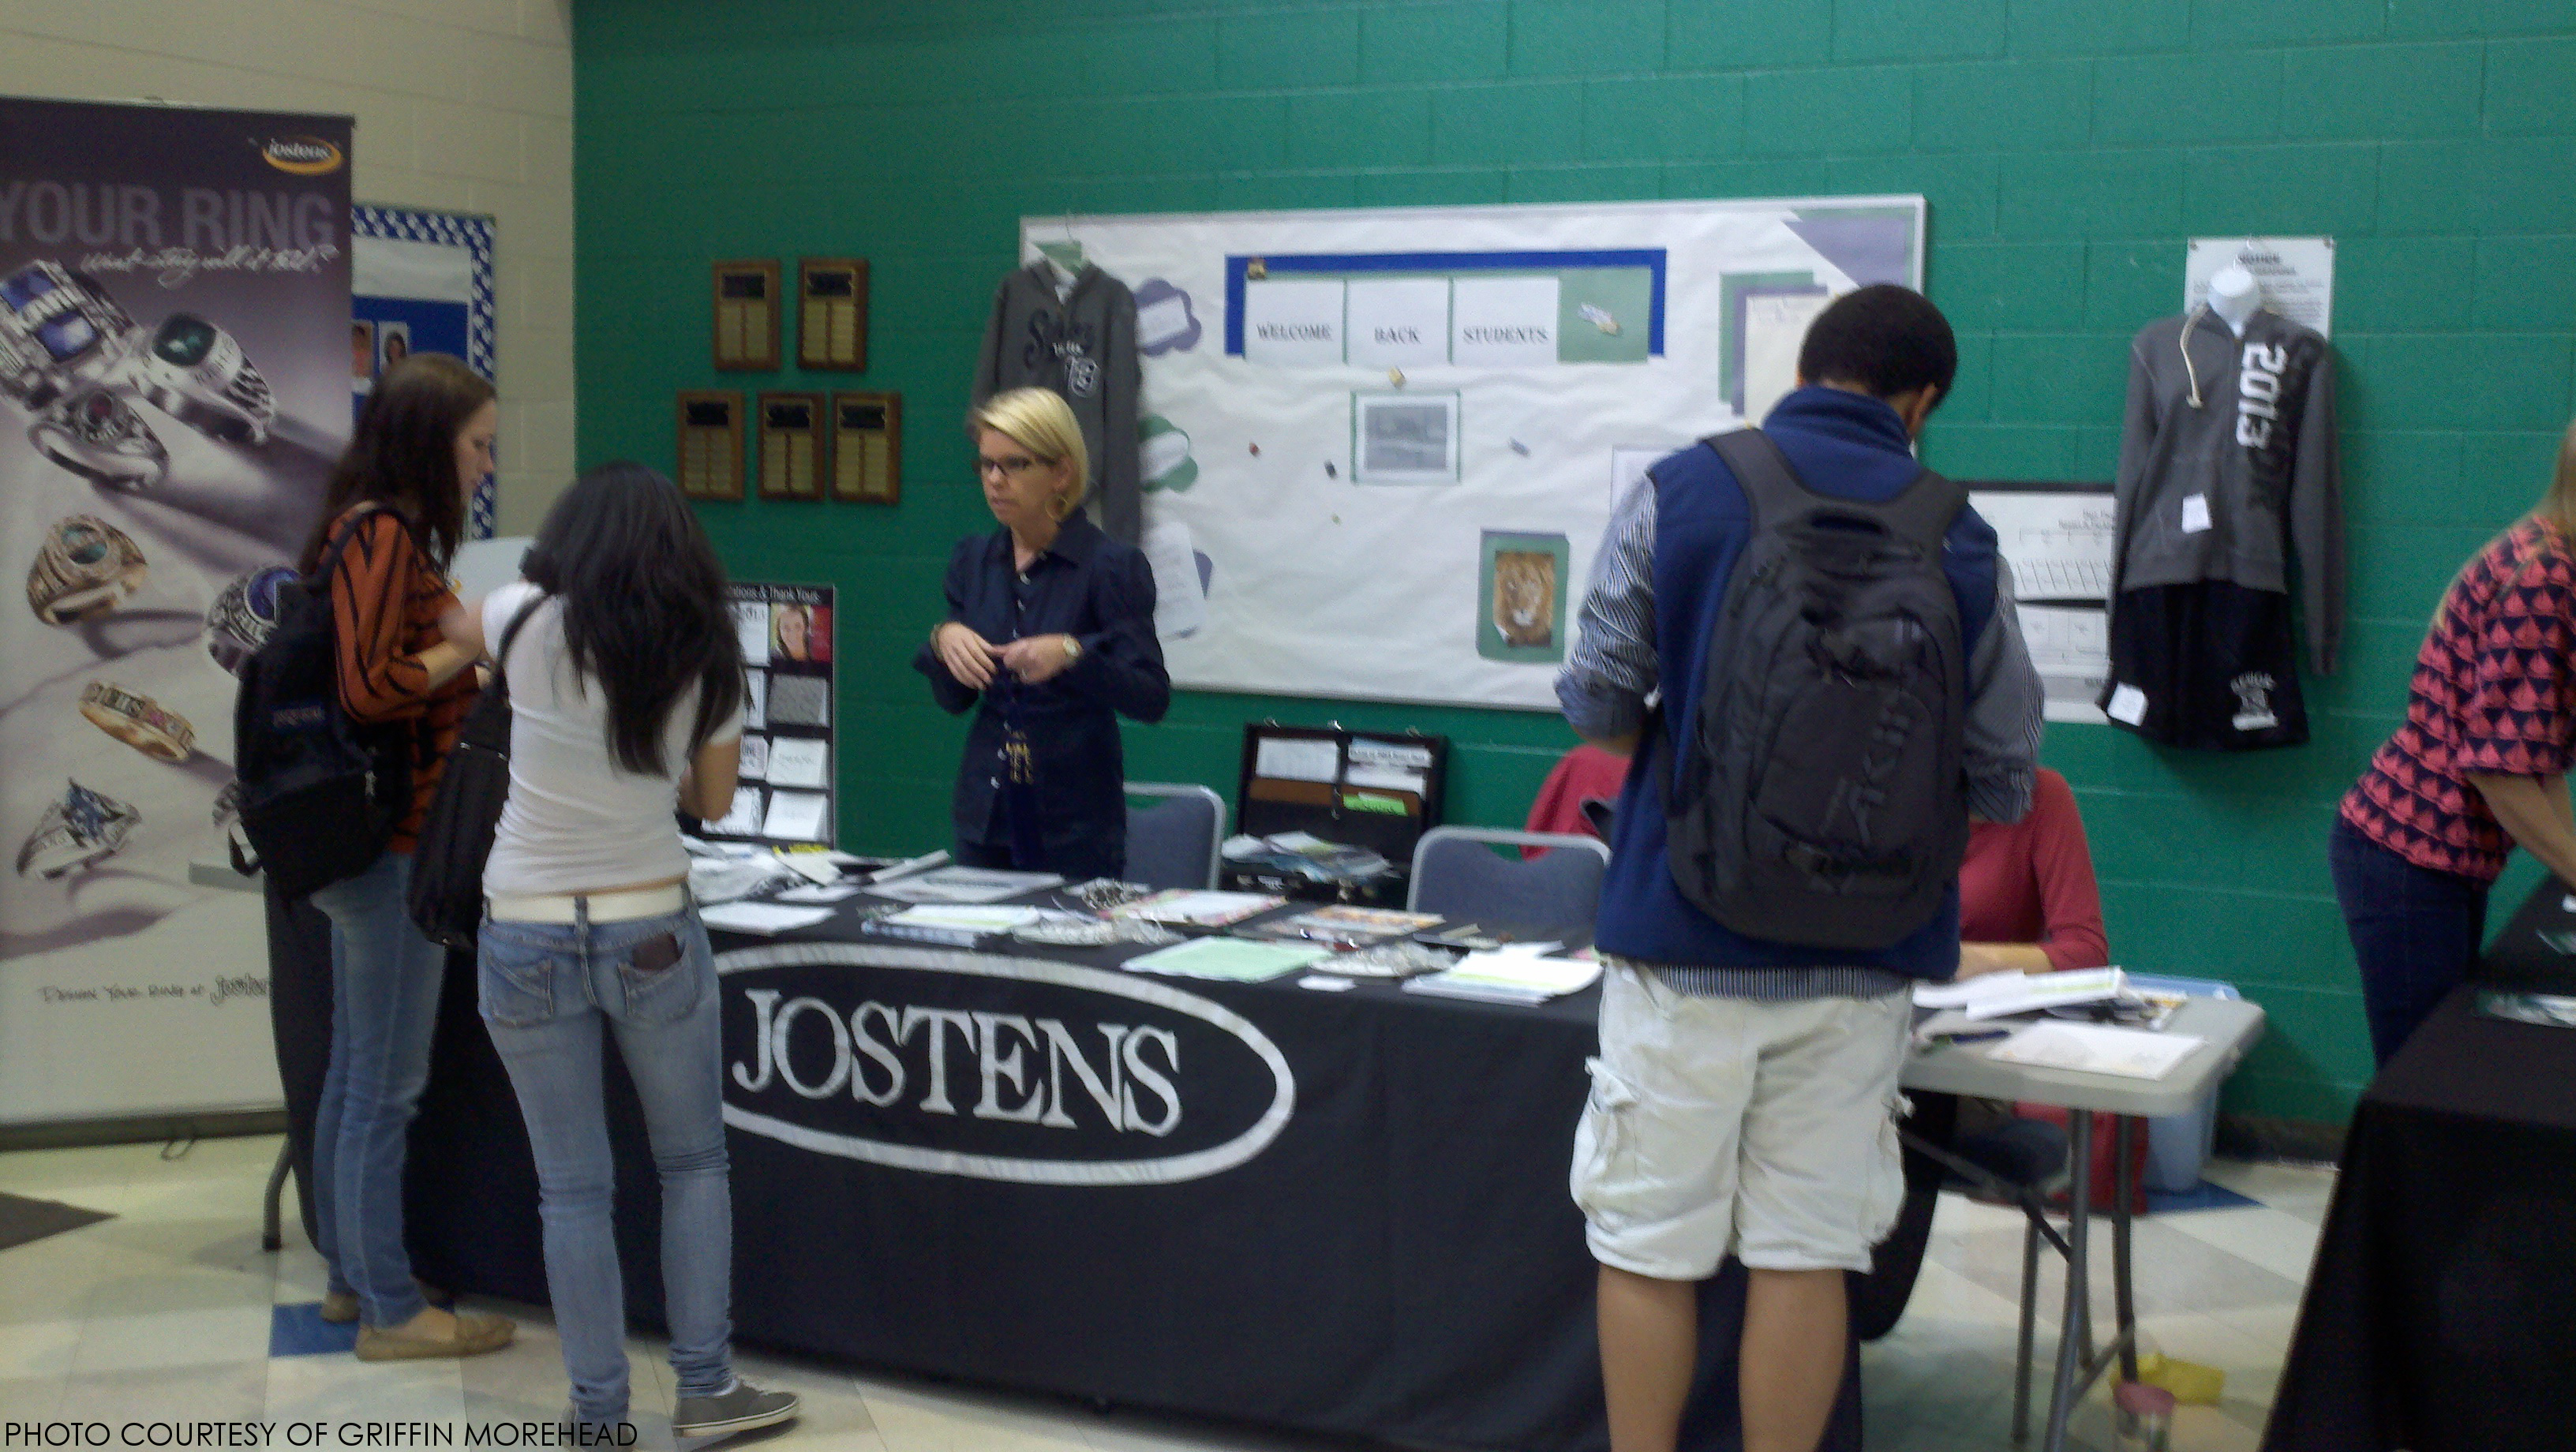 A Jostens representative helps several students at the Jostens stand on October 2.  Jostens was selling graduations caps, gowns and announcements, as well as class rings.